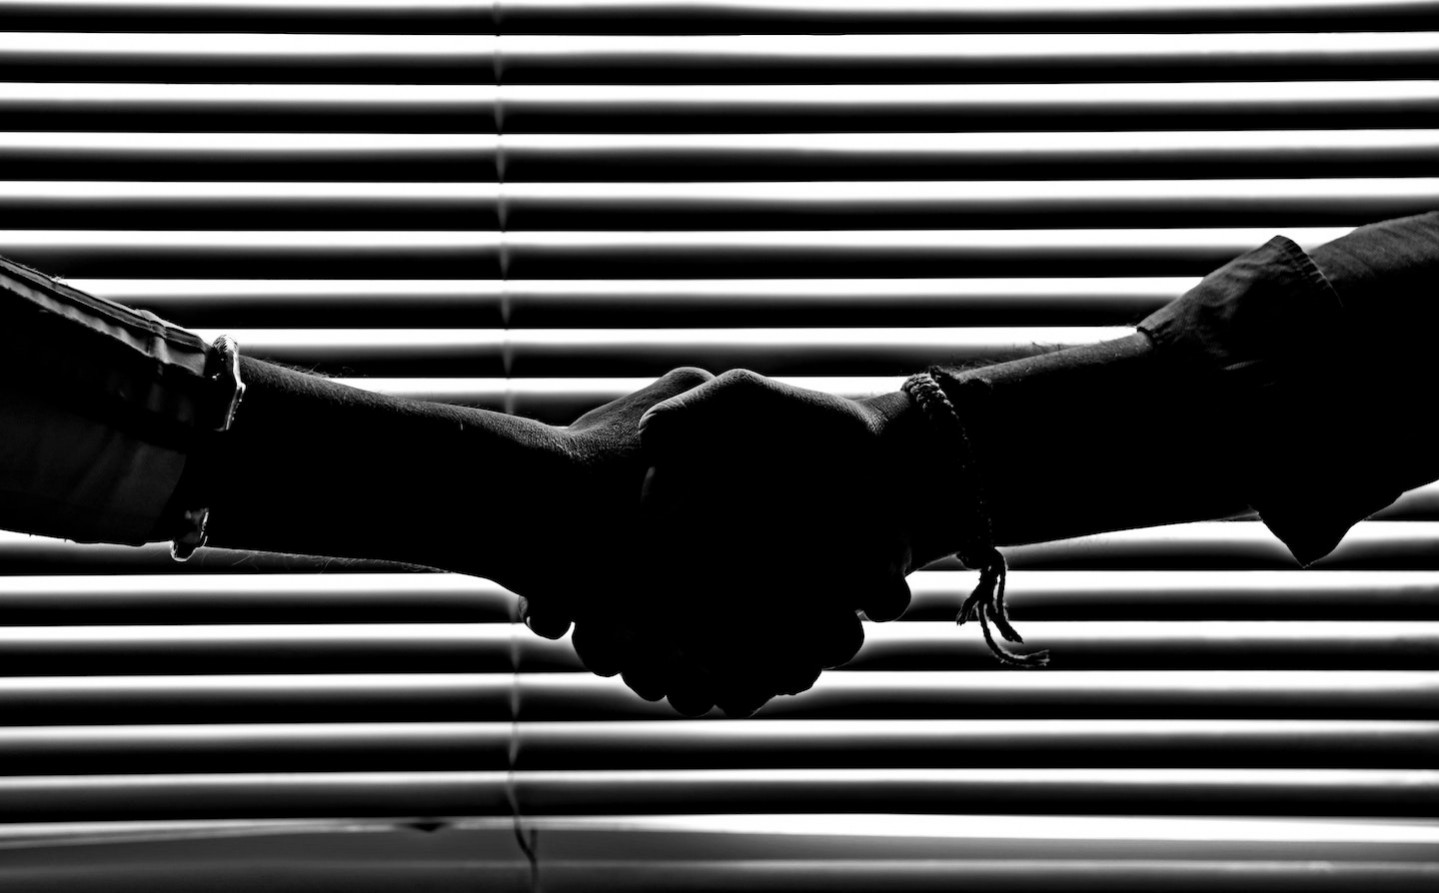 monochrome-photography-of-people-shaking-hands-814544